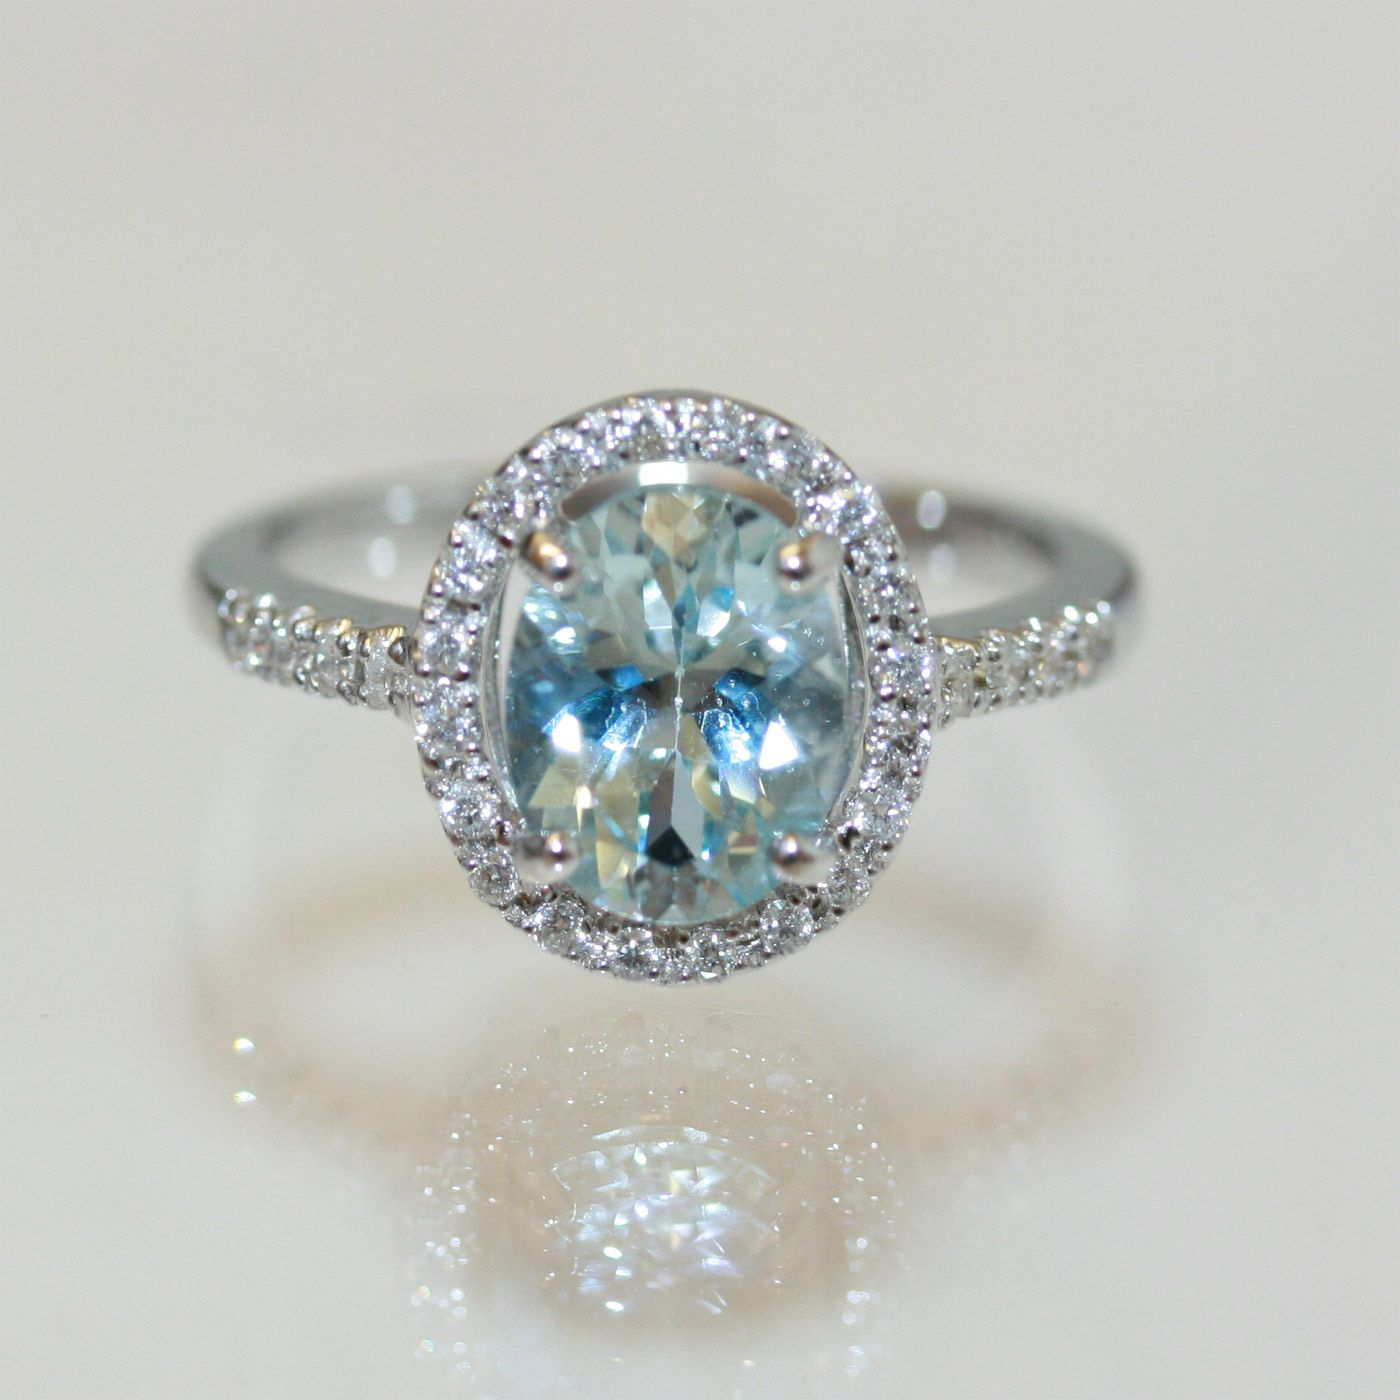 aquamarine rings buy 18ct aquamarine and diamond ring. Black Bedroom Furniture Sets. Home Design Ideas